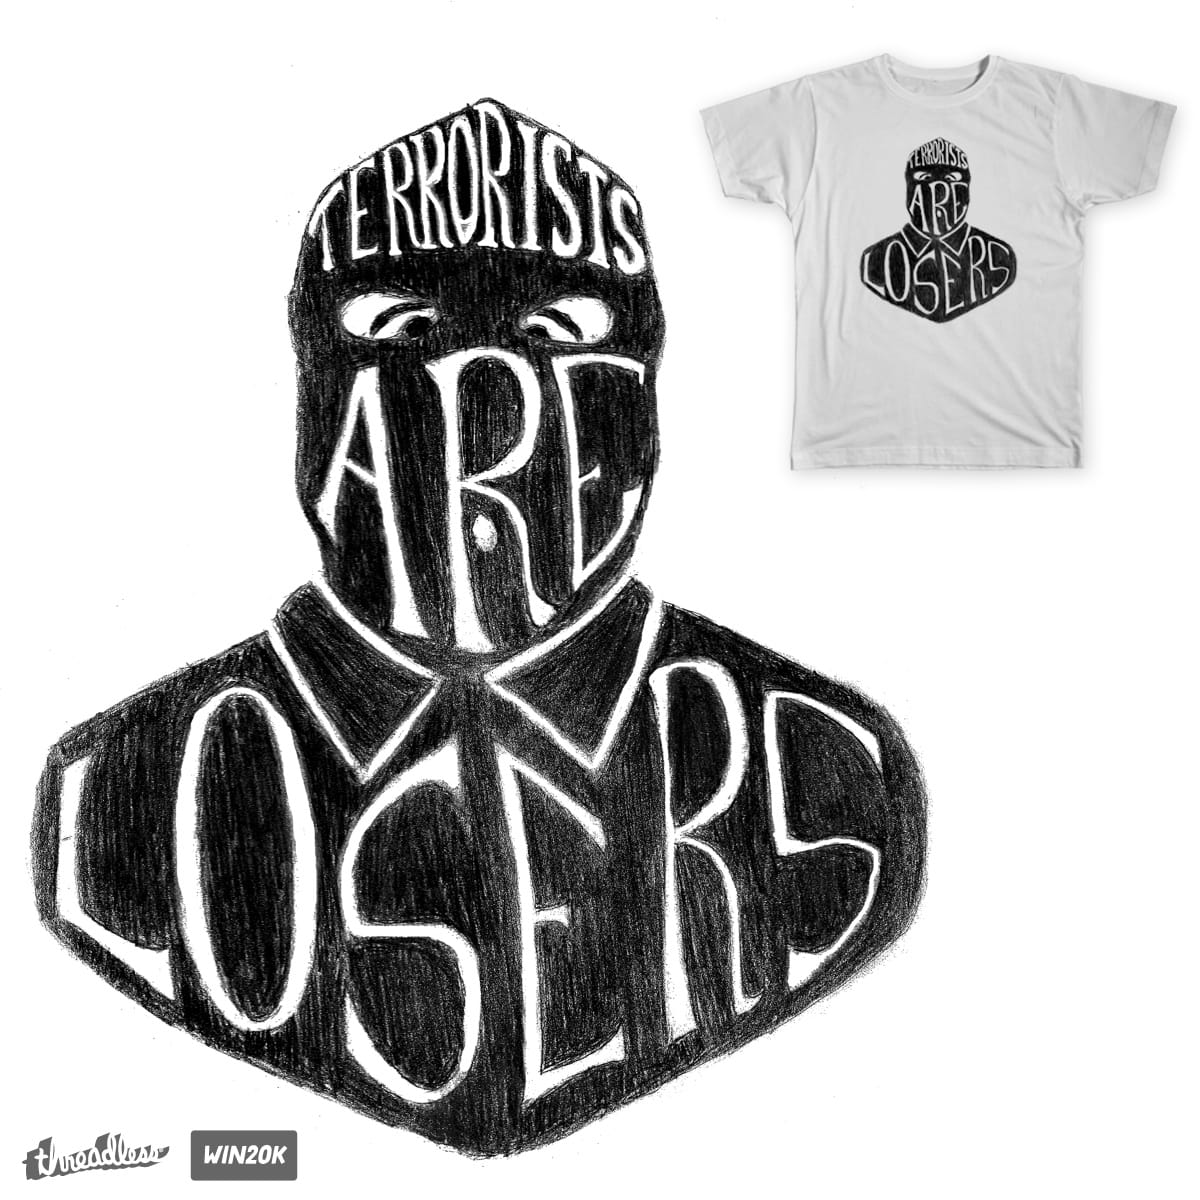 Terrorists are Losers by TRYBYK on Threadless